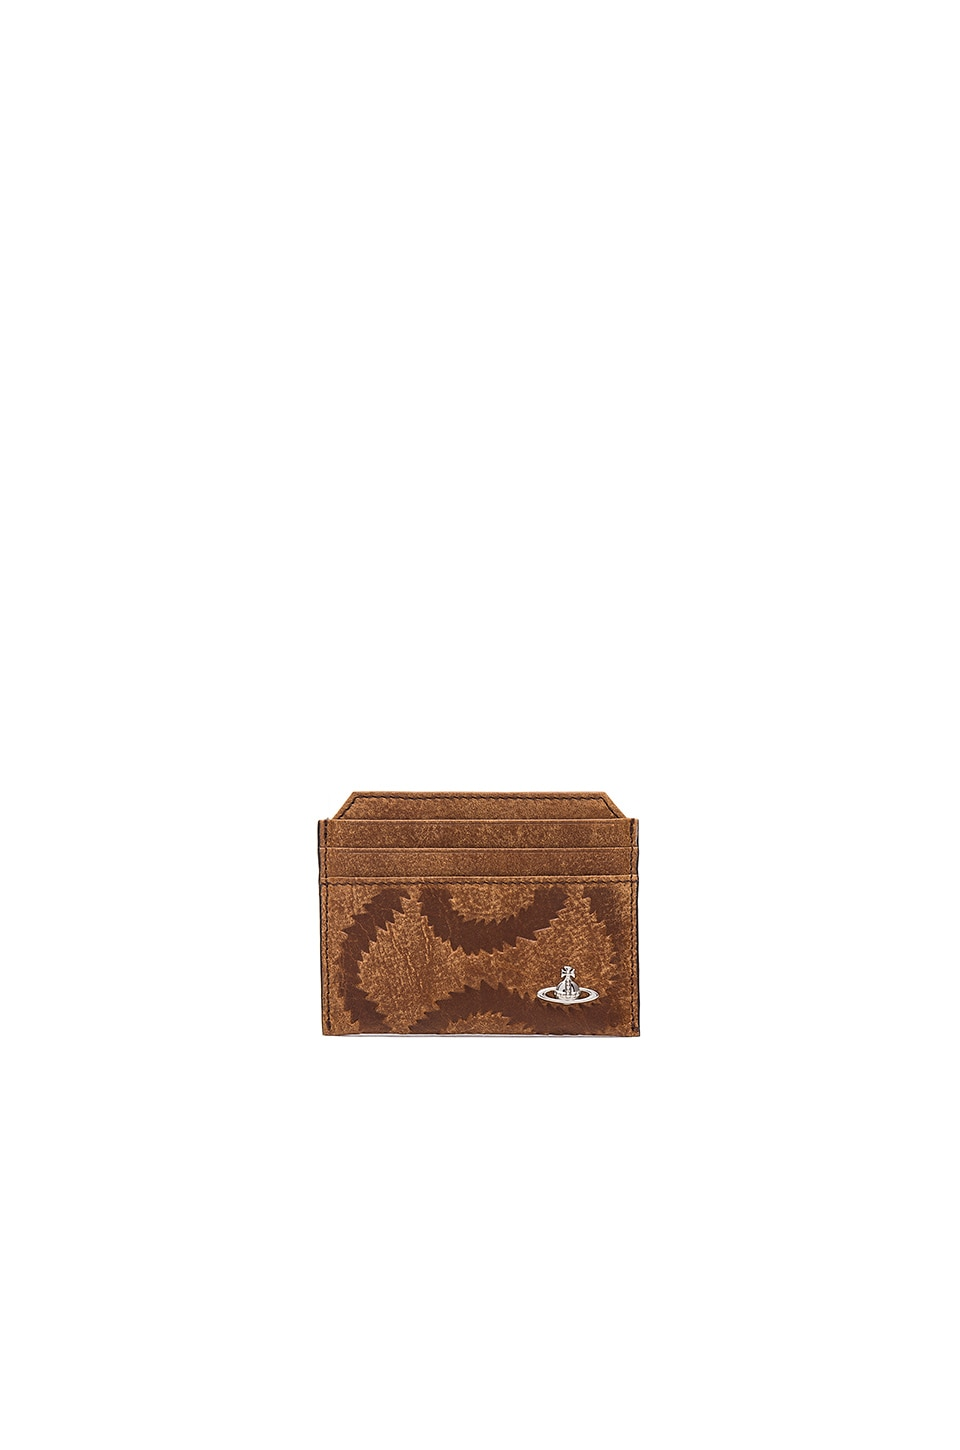 New Credit Card Holder by Vivienne Westwood